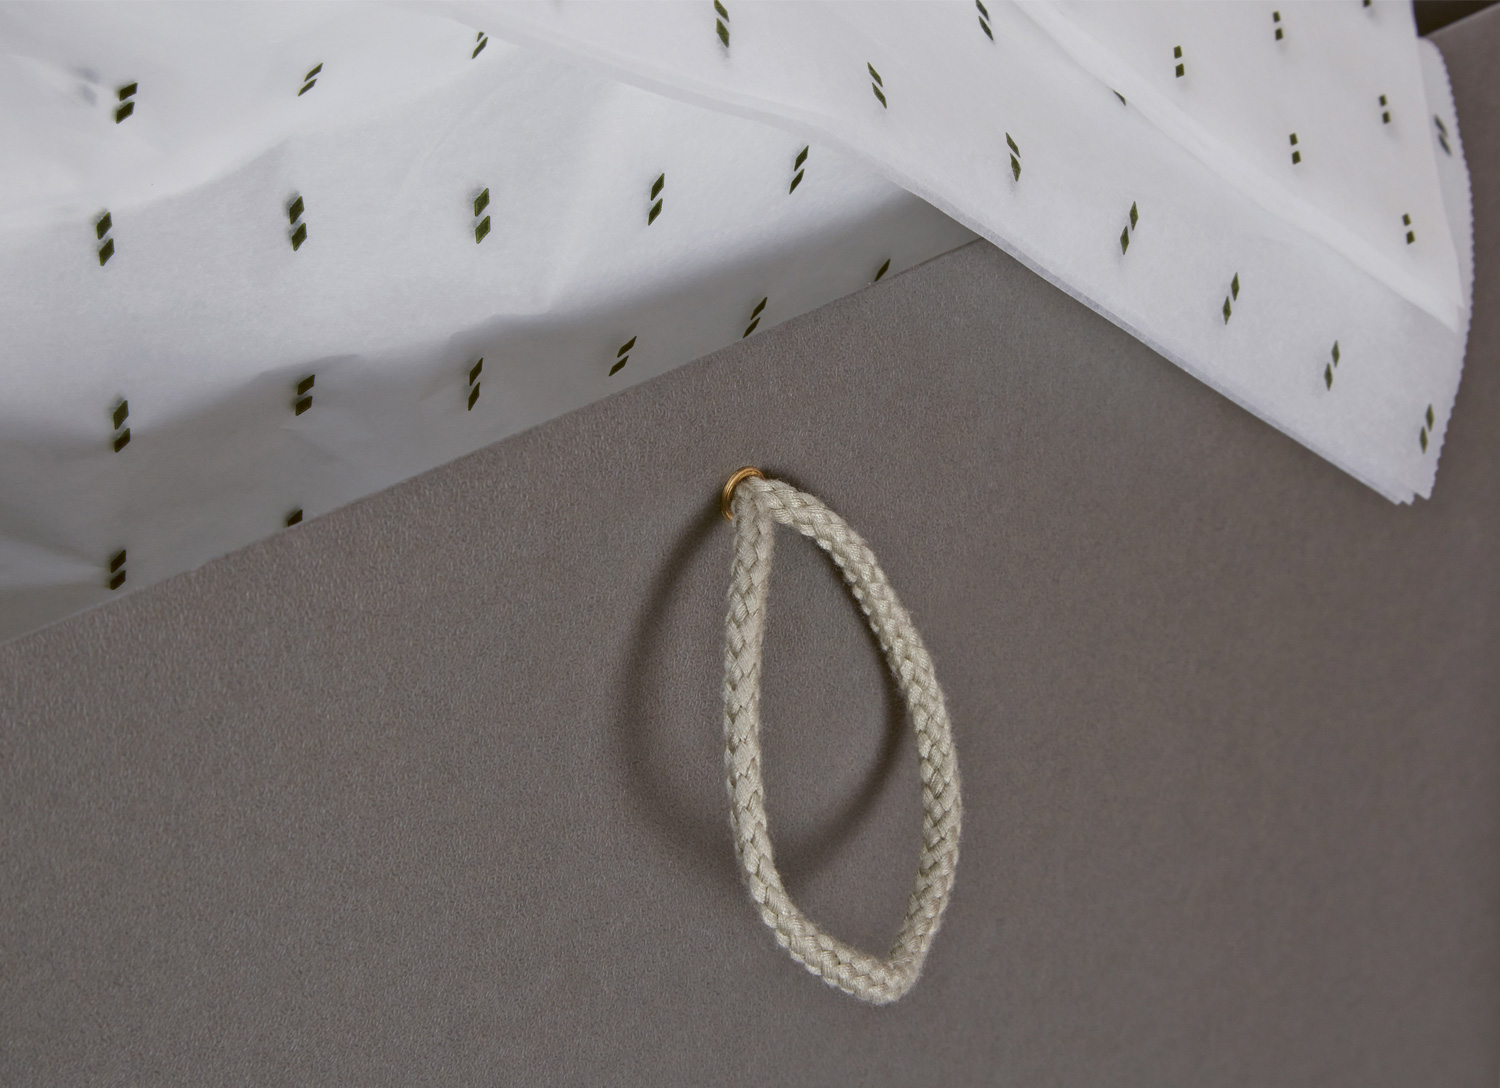 Progress Packaging HardGraft Luxury Fashion Retail Carrier Bags Cord Colorplan Textured Tissue Paper